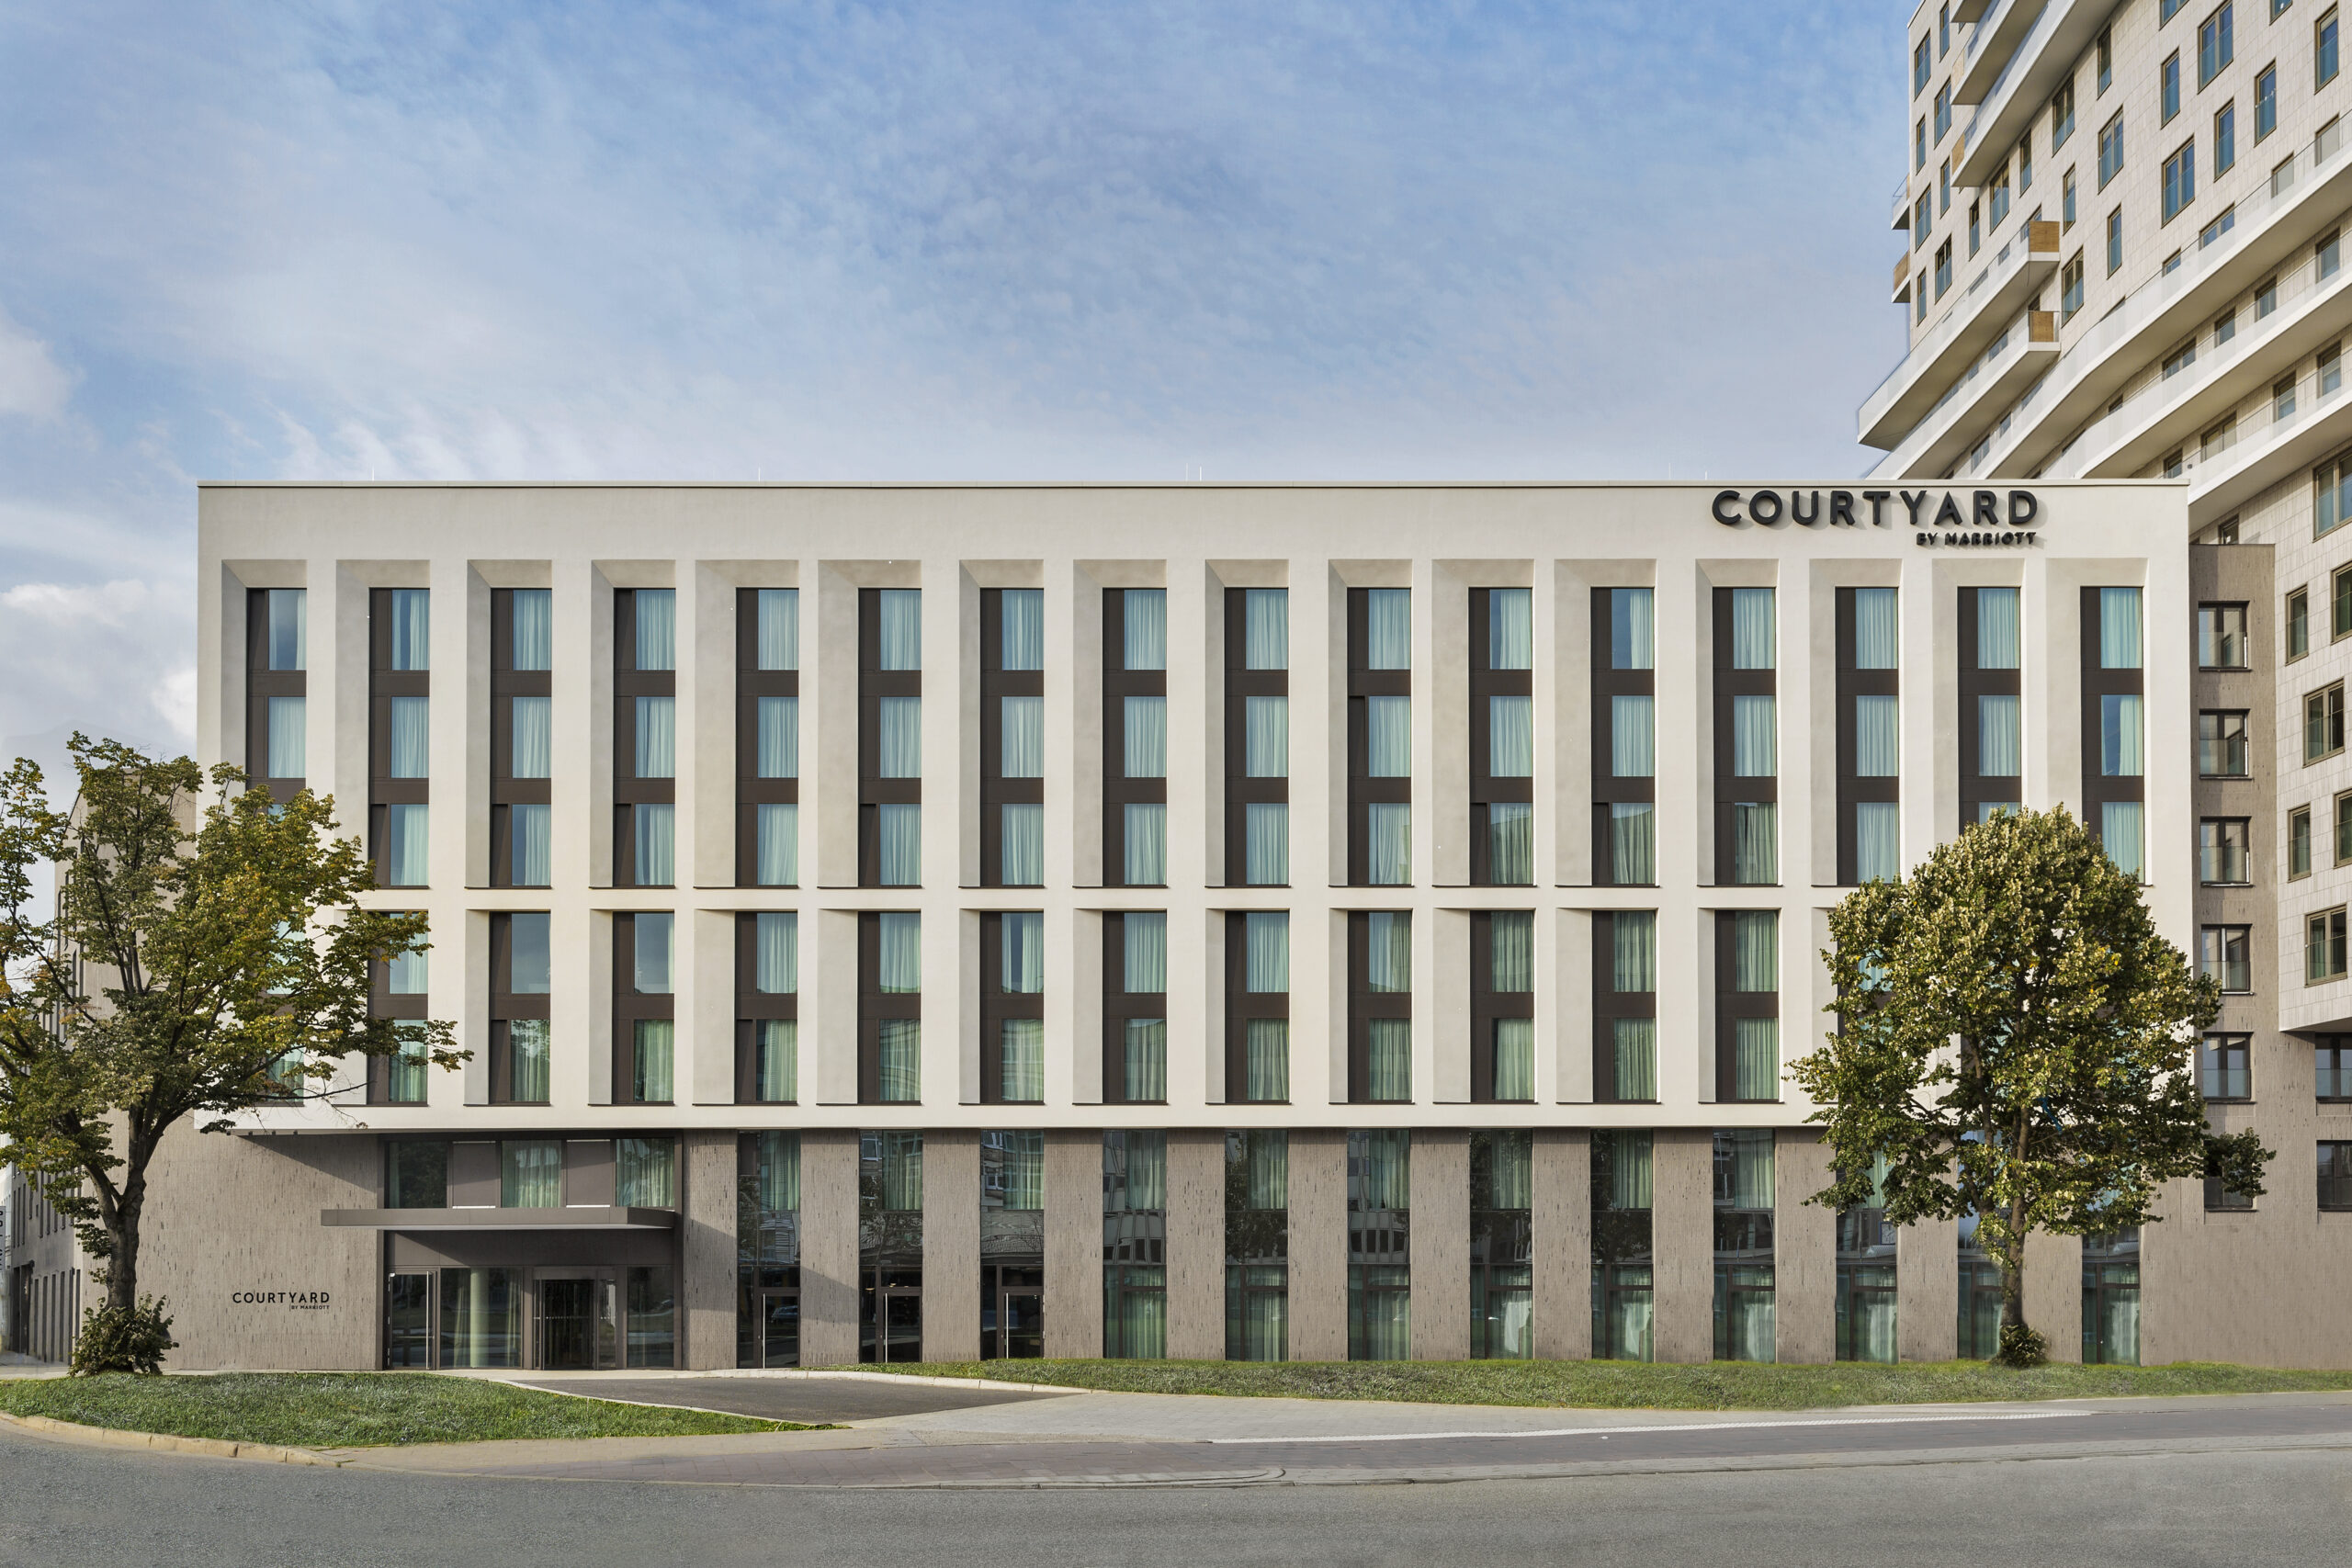 Courtyard by Marriott Hamburg City